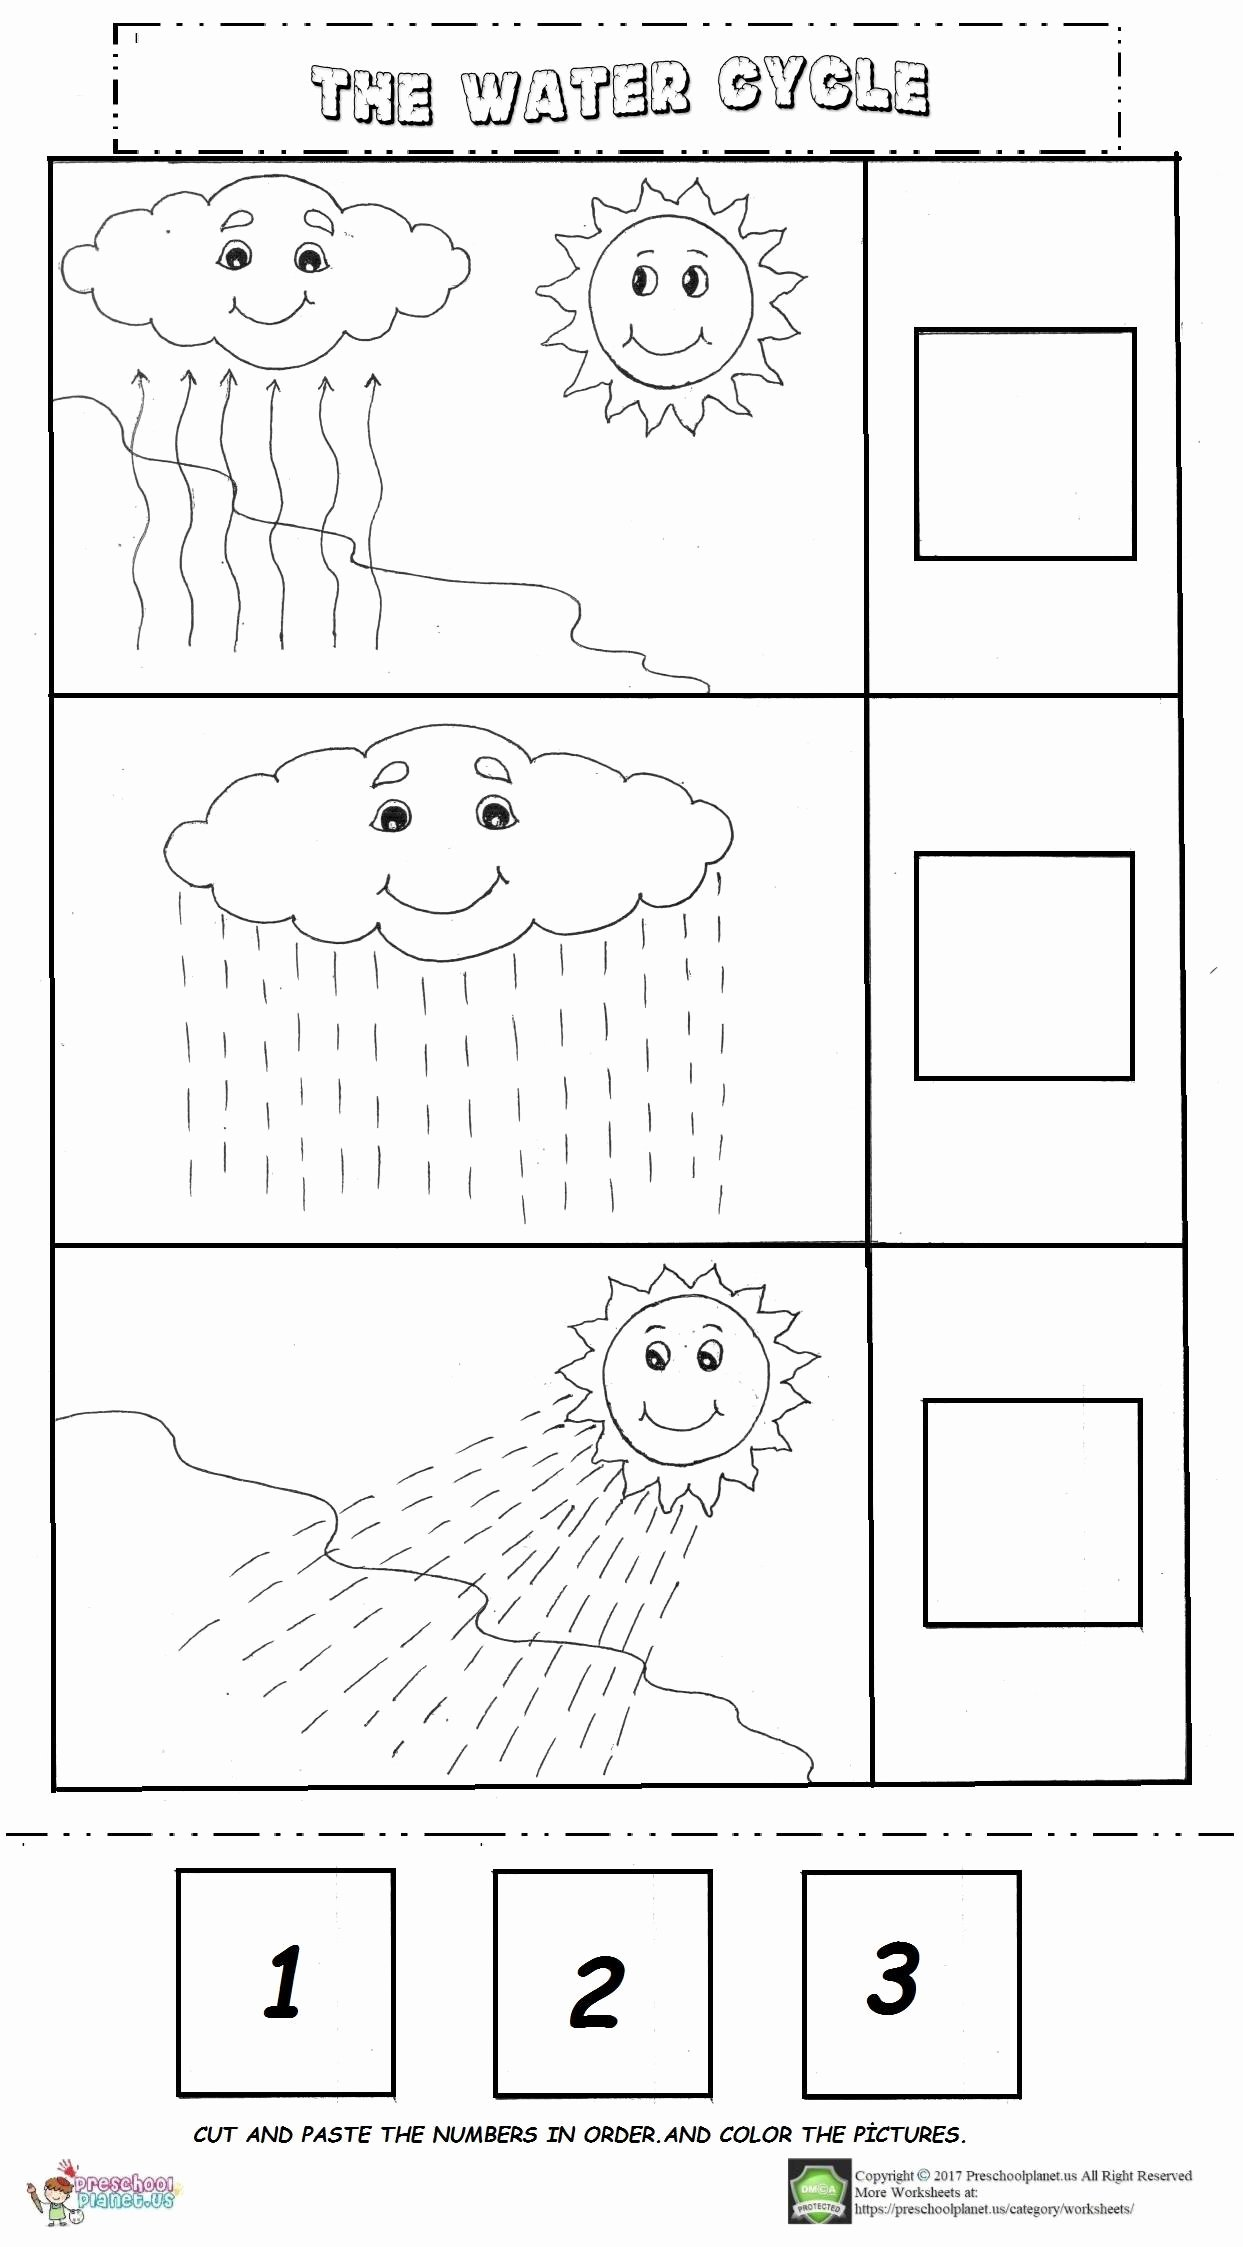 Water Worksheets for Preschoolers Lovely the Water Cycle Worksheet – Preschoolplanet